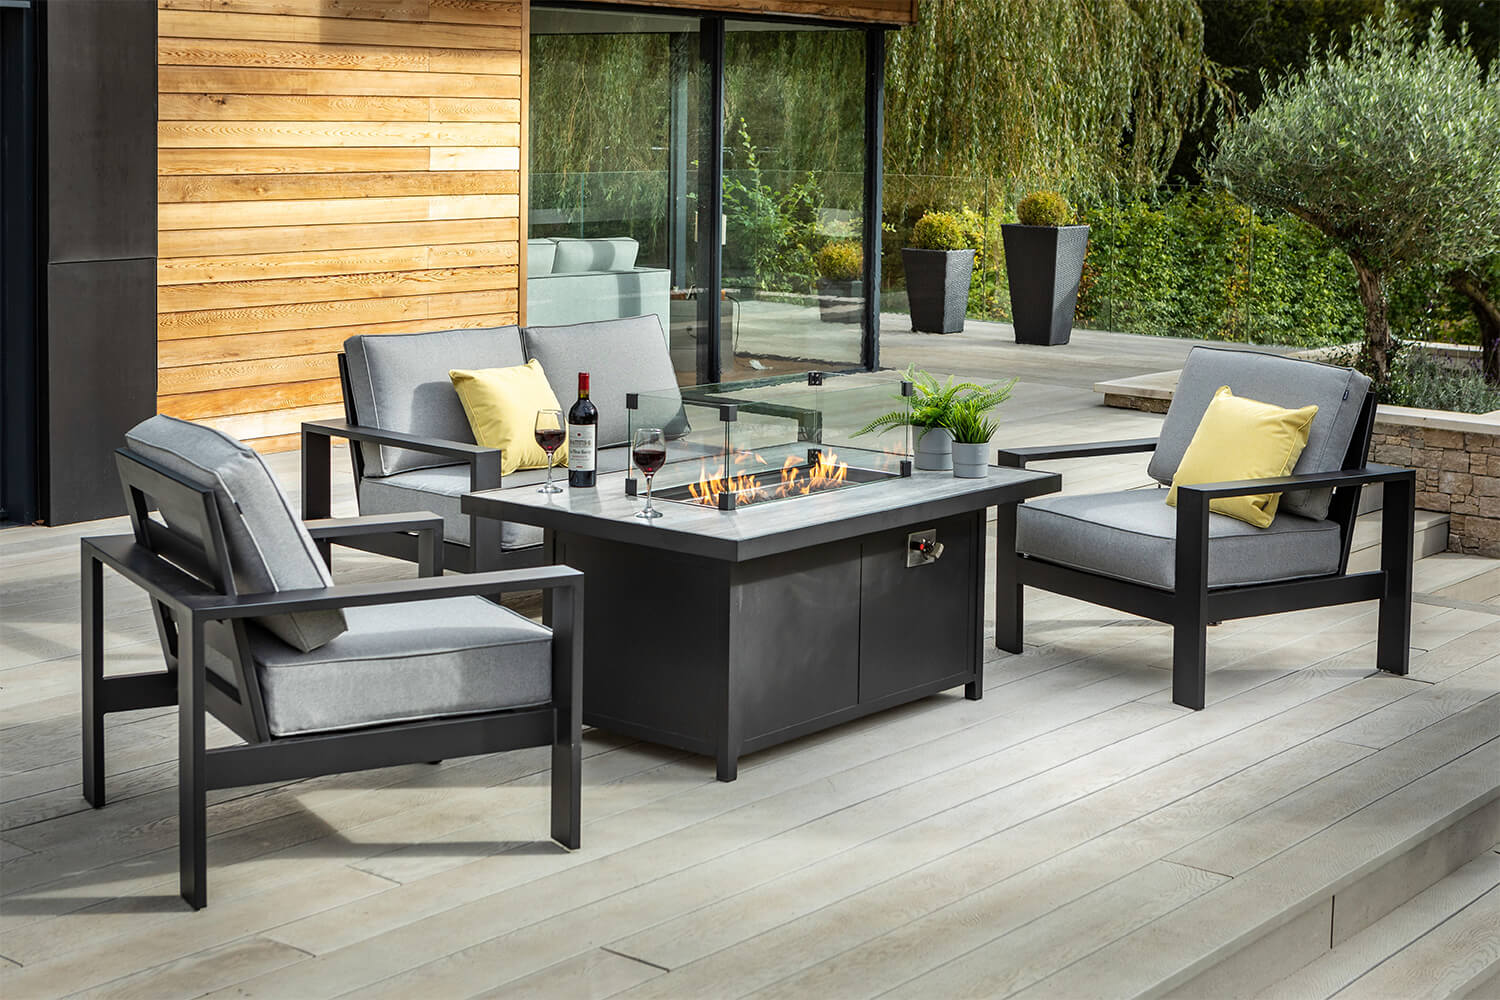 Image of: Hartman Atlas 2 Seater Sofa Lounge Set With Gas Fire Pit Table Carbon 2023 99 Garden4less Uk Shop